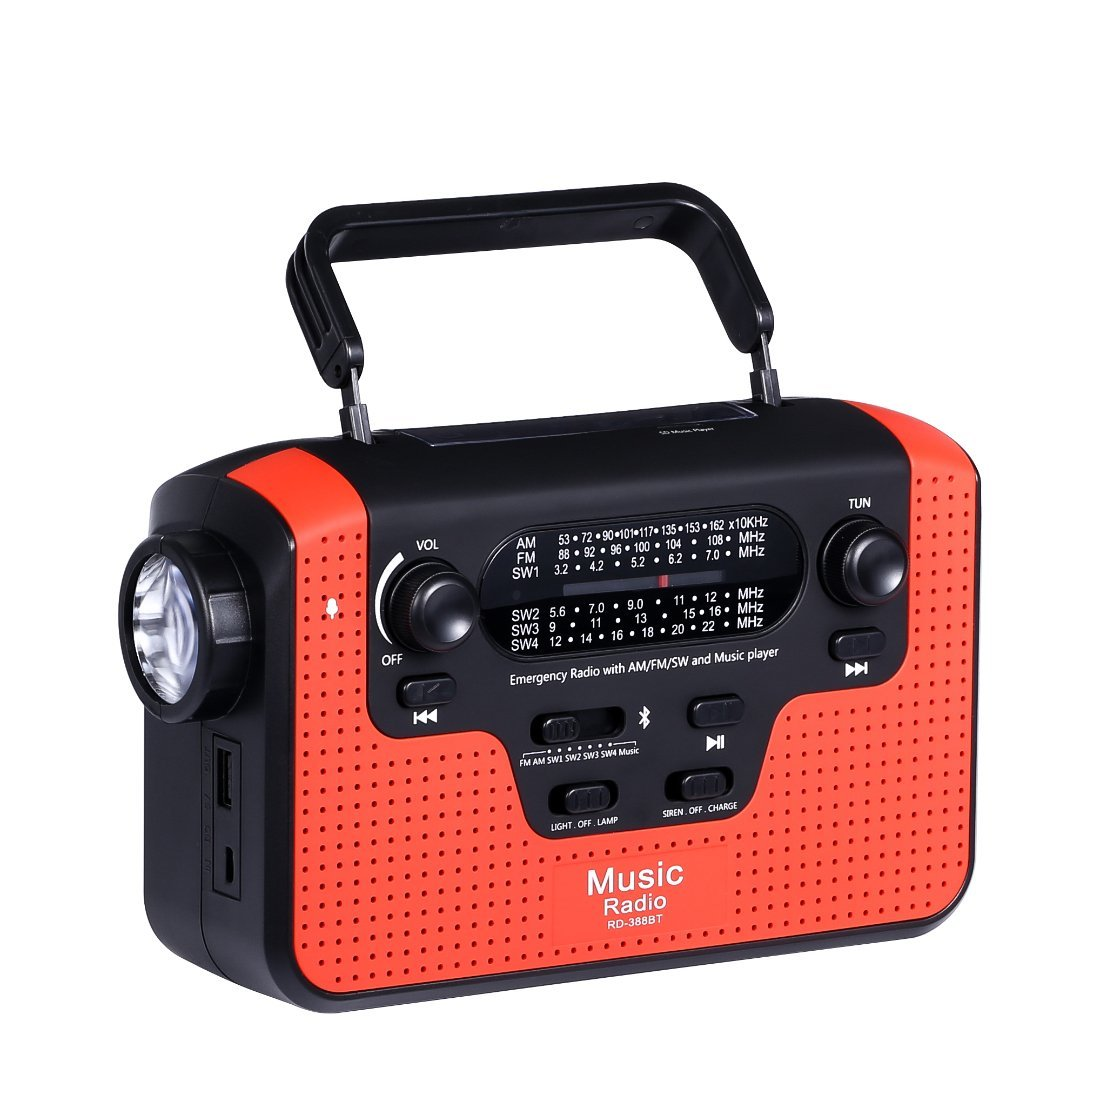 Solar Hand Crank Emergency AM/FM/SW/WB Radio, Bluetooth TF Card Speakers with Lights, LED Flashlight and Reading Camping Lamp, Battery Radio Portable and 2300mAh Power Bank Cell Phone Charger (red) 141[並行輸入] B07F9SXDHZ